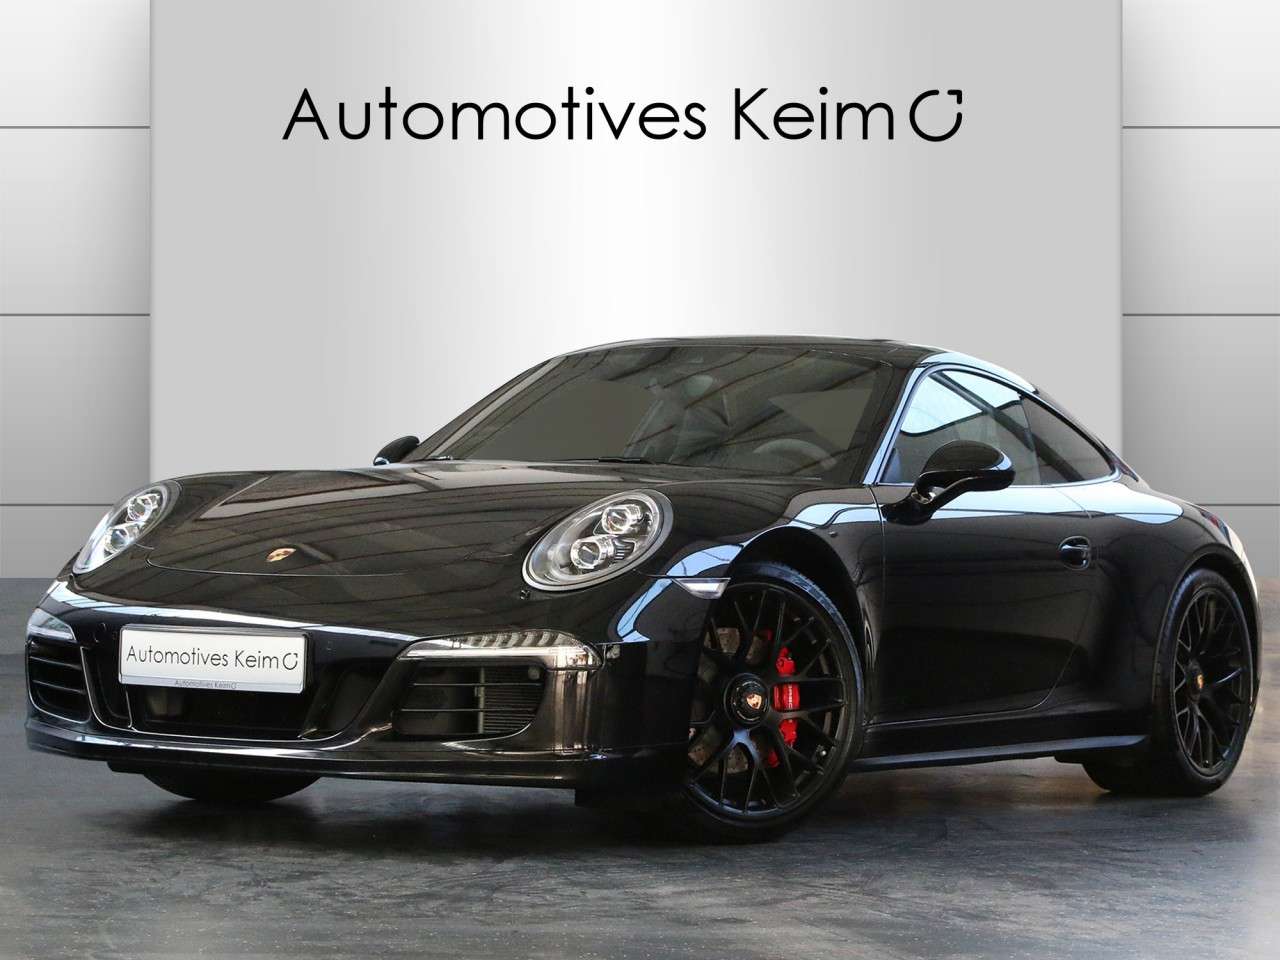 PORSCHE_911_991_COUPE_Automotives_Keim_GmbH_63500_Seligenstadt_www.automotives-keim.de_oliver_keim_002265